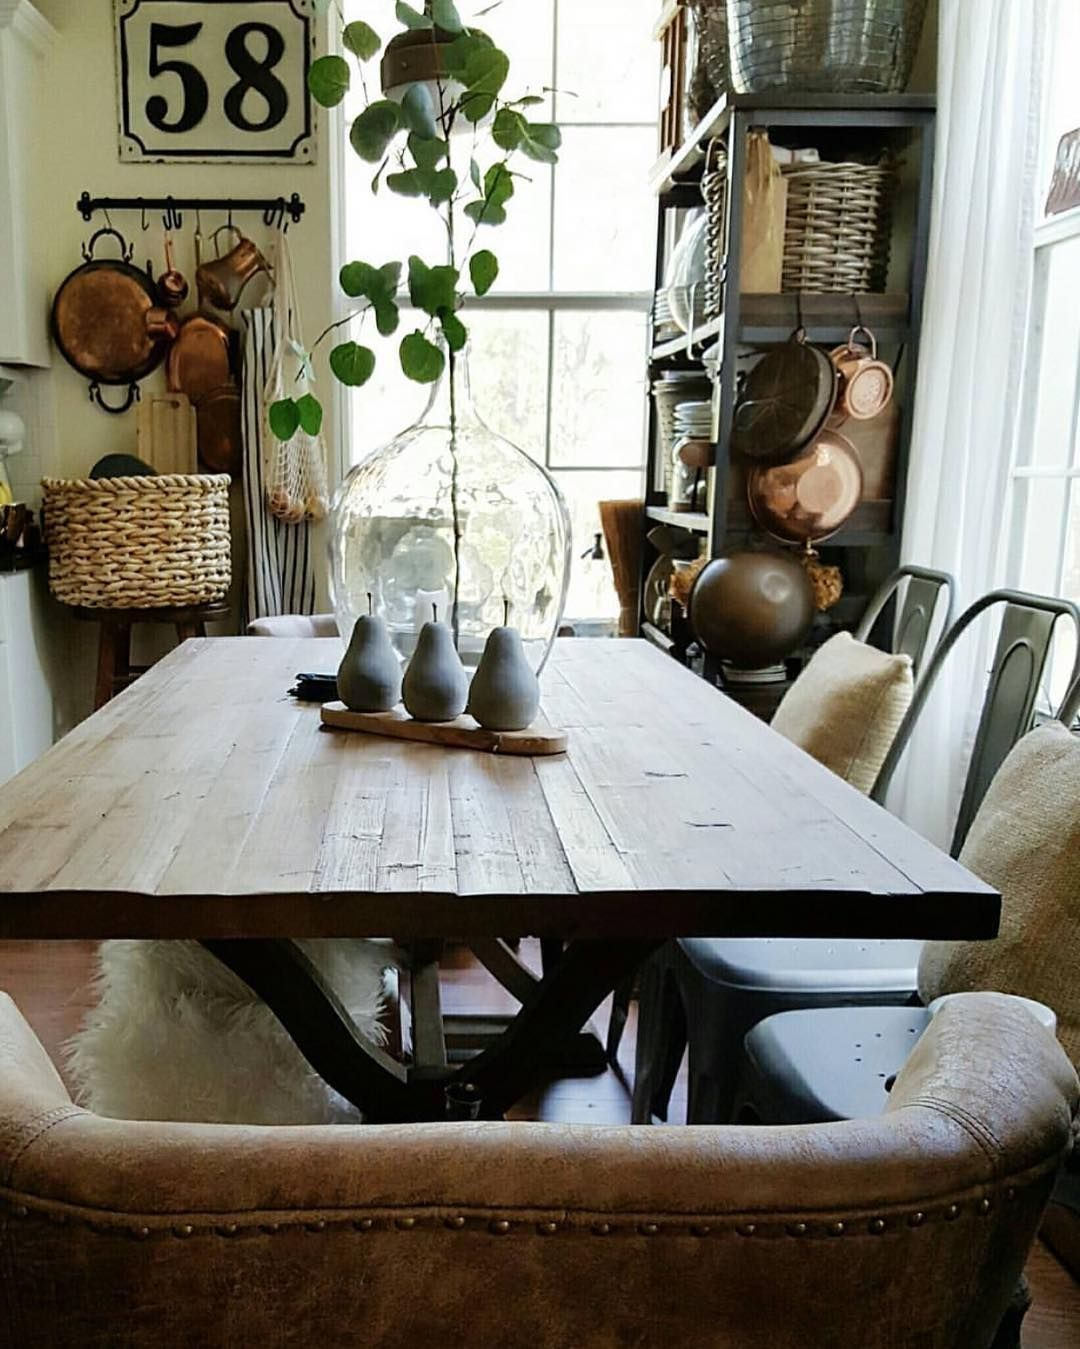 Casual Dining Rooms Decorating Ideas For A Soothing Interior: How To Make Clutter Work... (With Images)